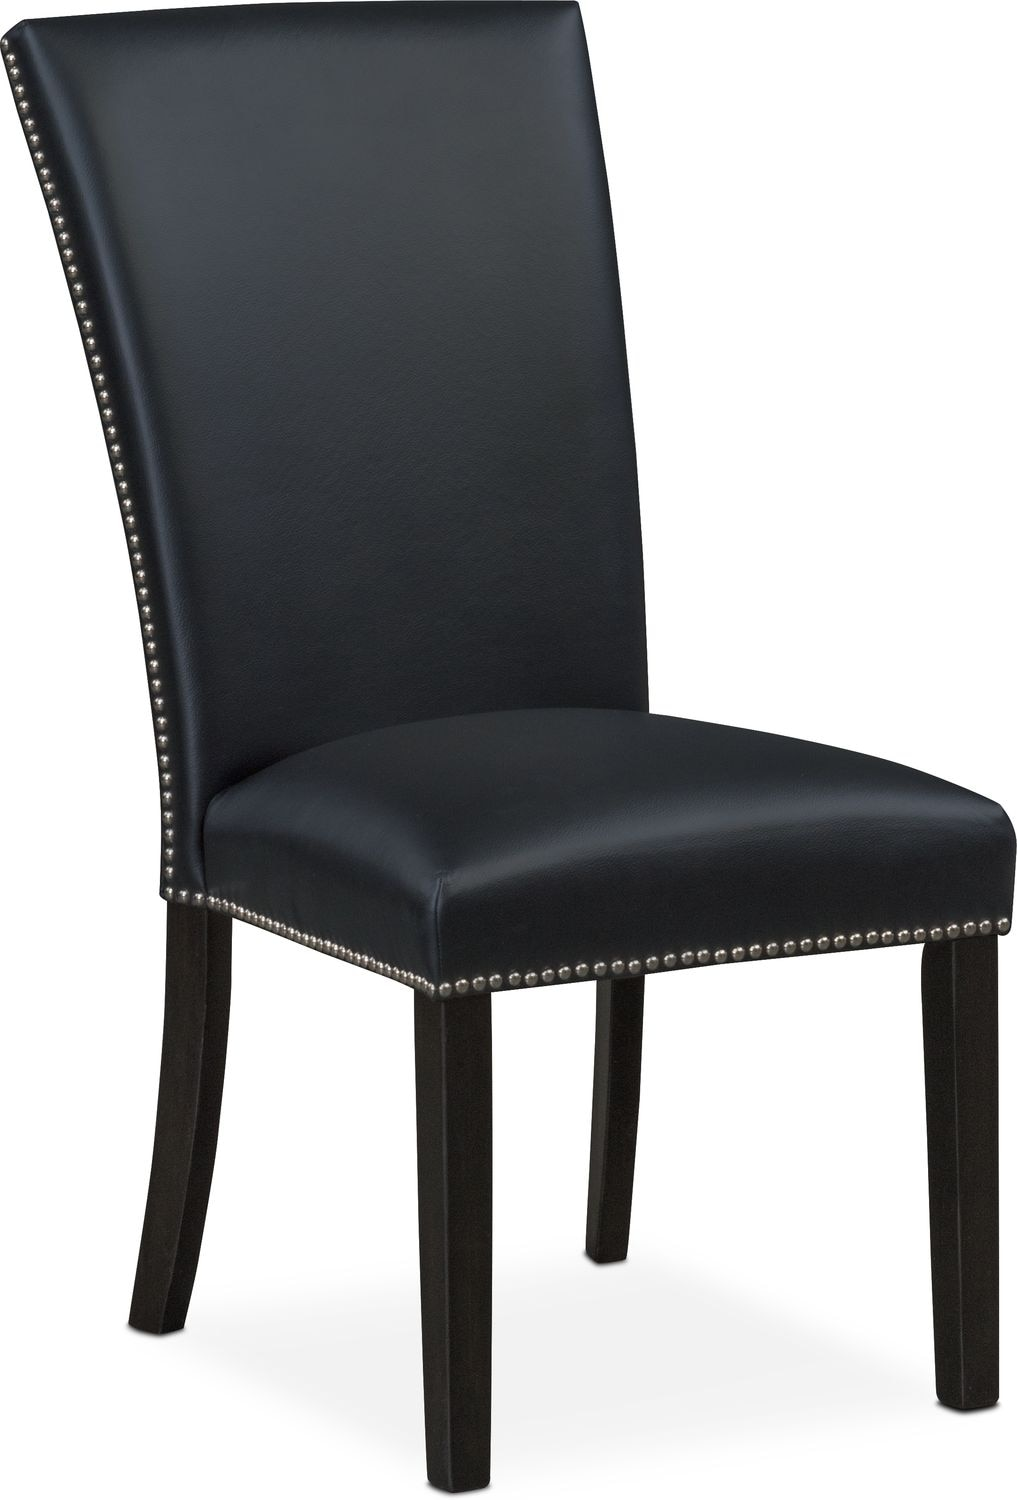 black side chair swing autocad block artemis value city furniture and mattresses